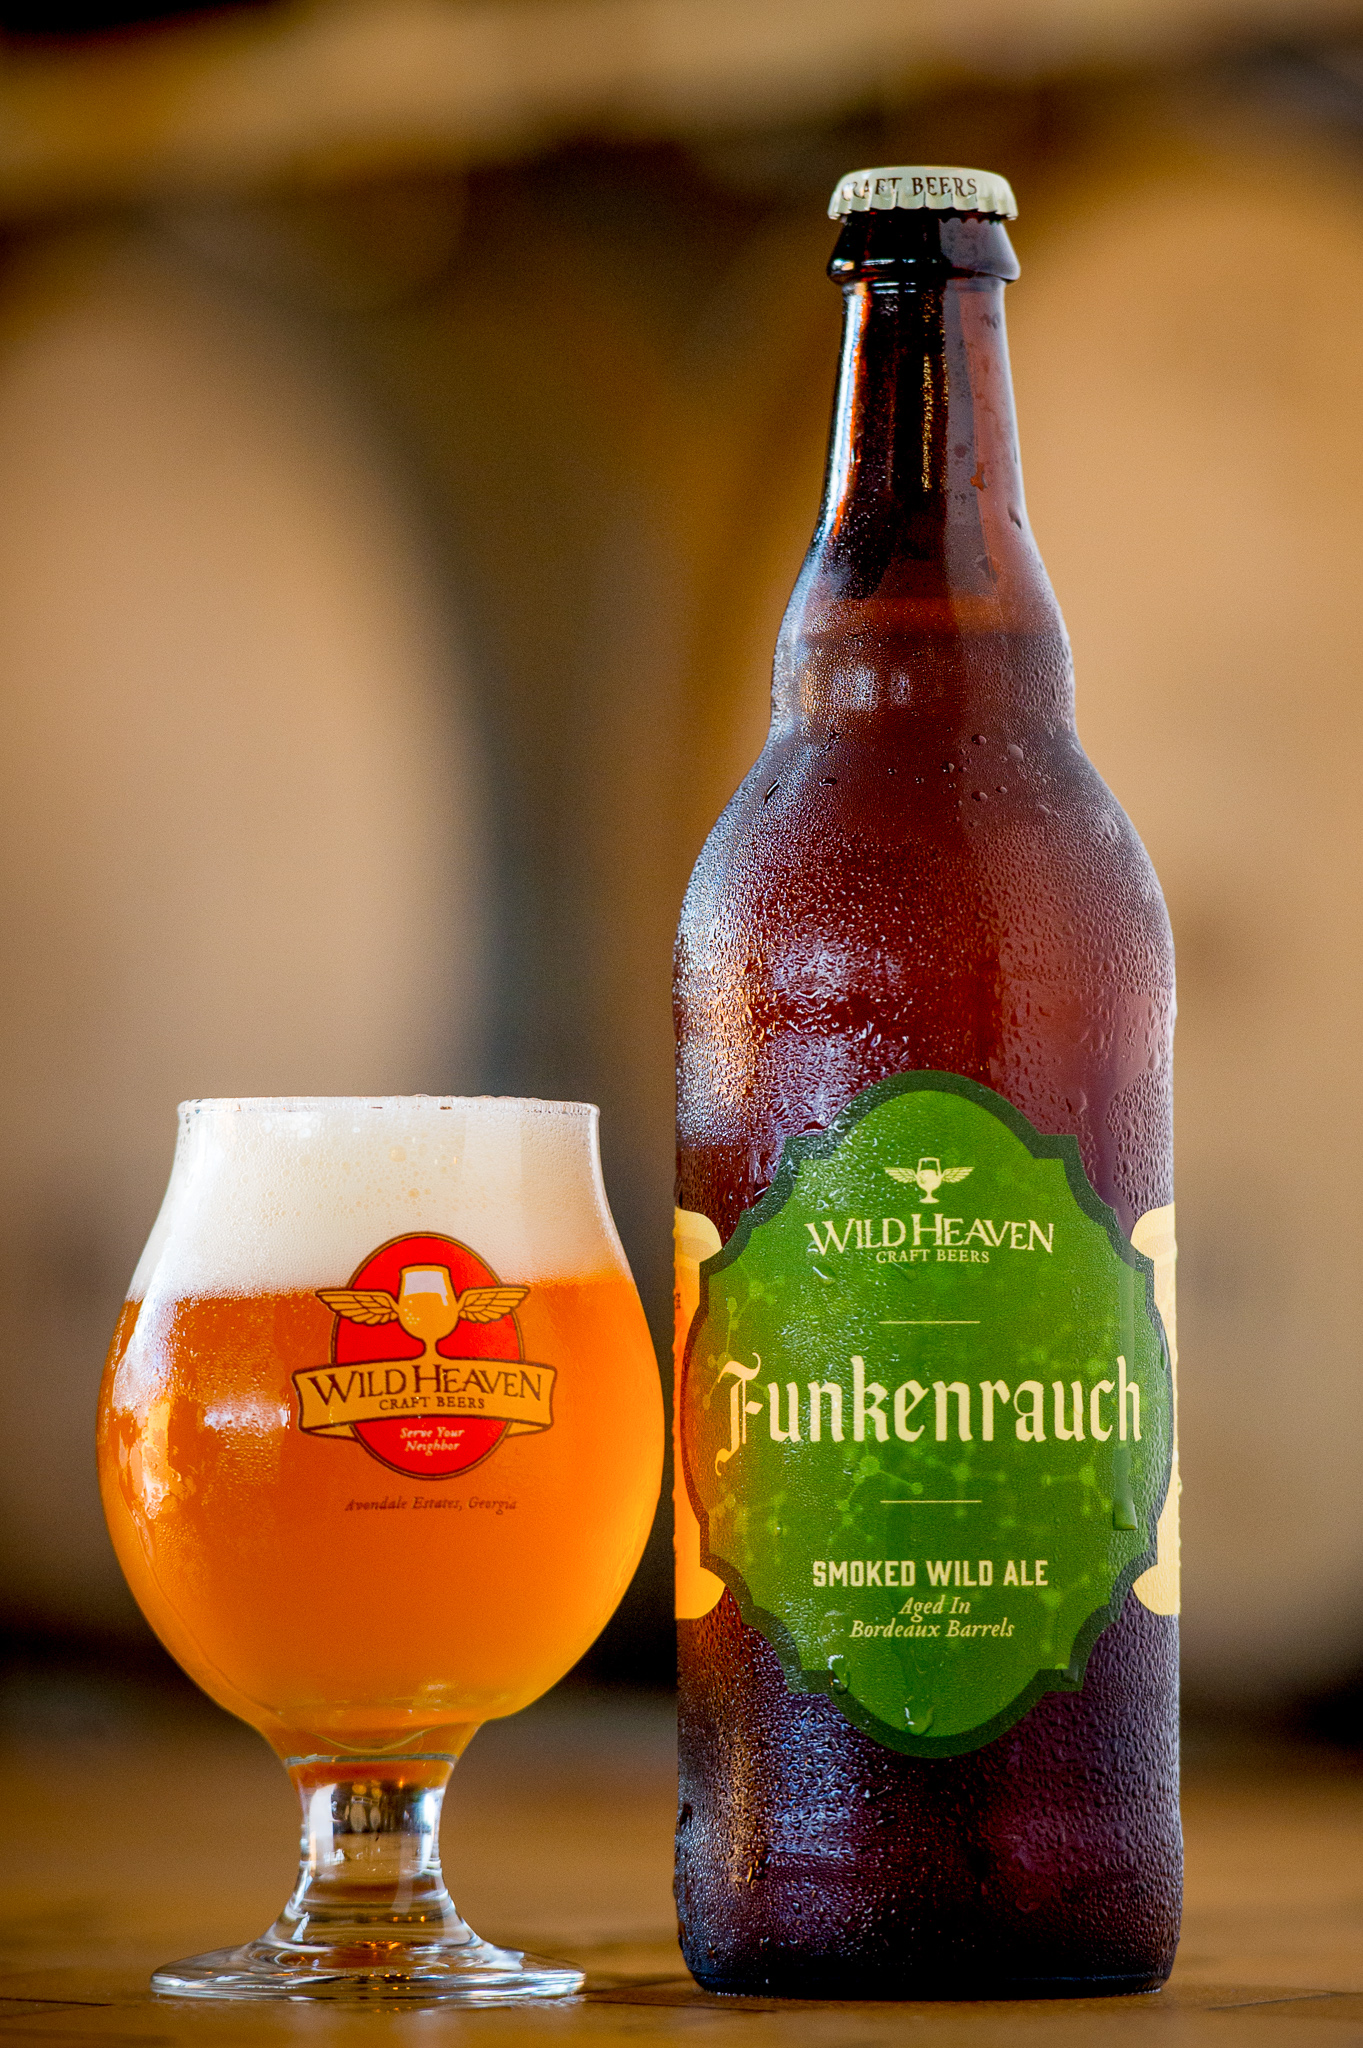 Funkenrauch - Smoked Wild Ale7% ABV | 7 IBUA truly new beer style is a rare thing. Funkenrauch is born of brewmaster Eric Johnsons's obsession with understanding beer on a molecular level. A 100% smoked malt beer shouldn't be so bright and light – but the addition of Drie Fonteinen brettanomyces eats up much of the smoky phenols that could have overwhelmed the palate, leaving behind a sour smoked ale that is unlike any we've ever tried.